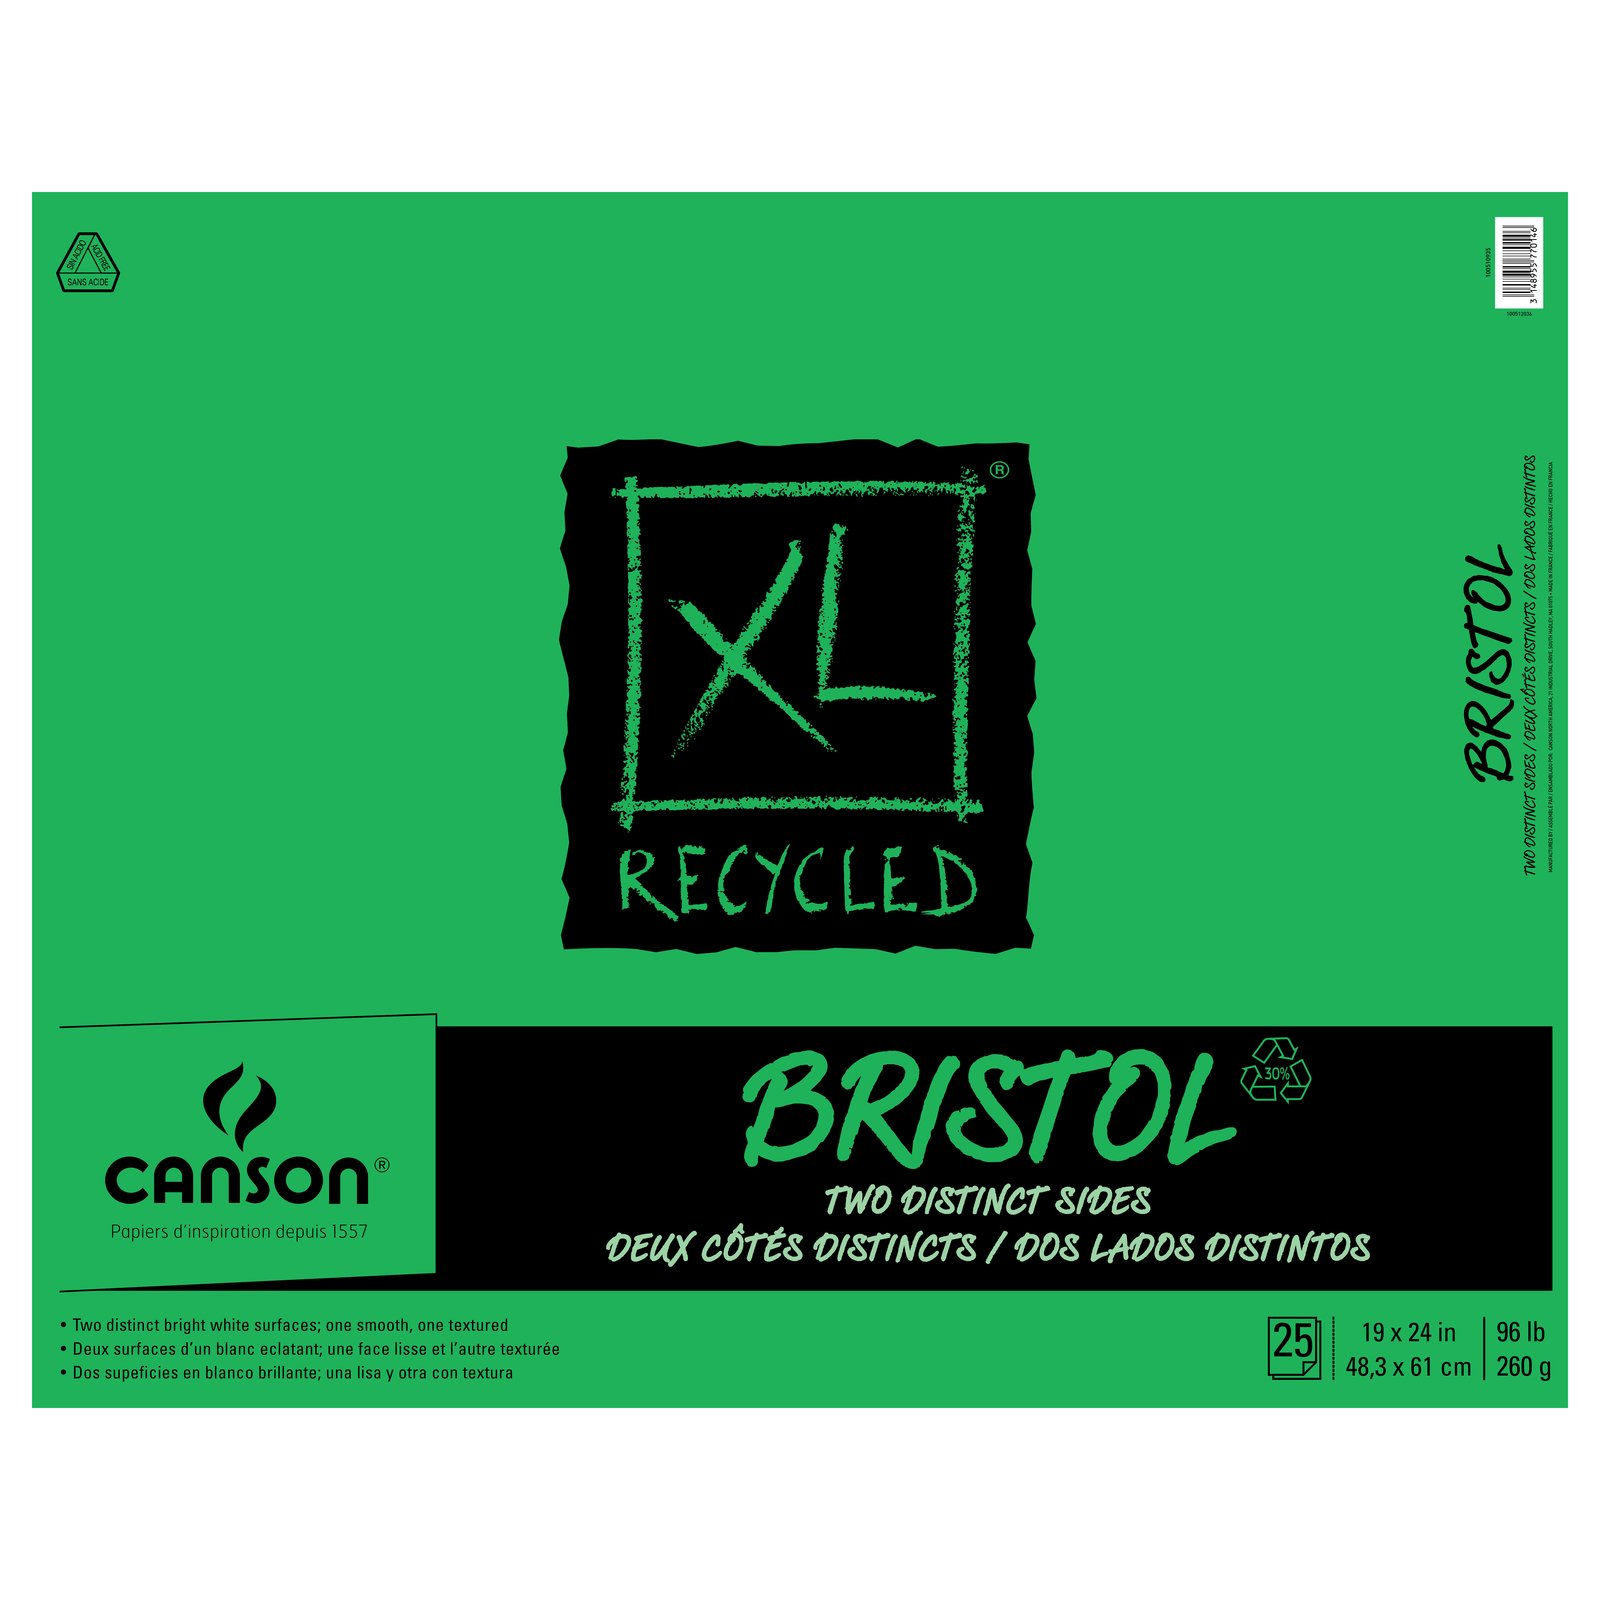 Canson XL Recycled Bristol Pads, 19 x 24 25 Shts./Pad